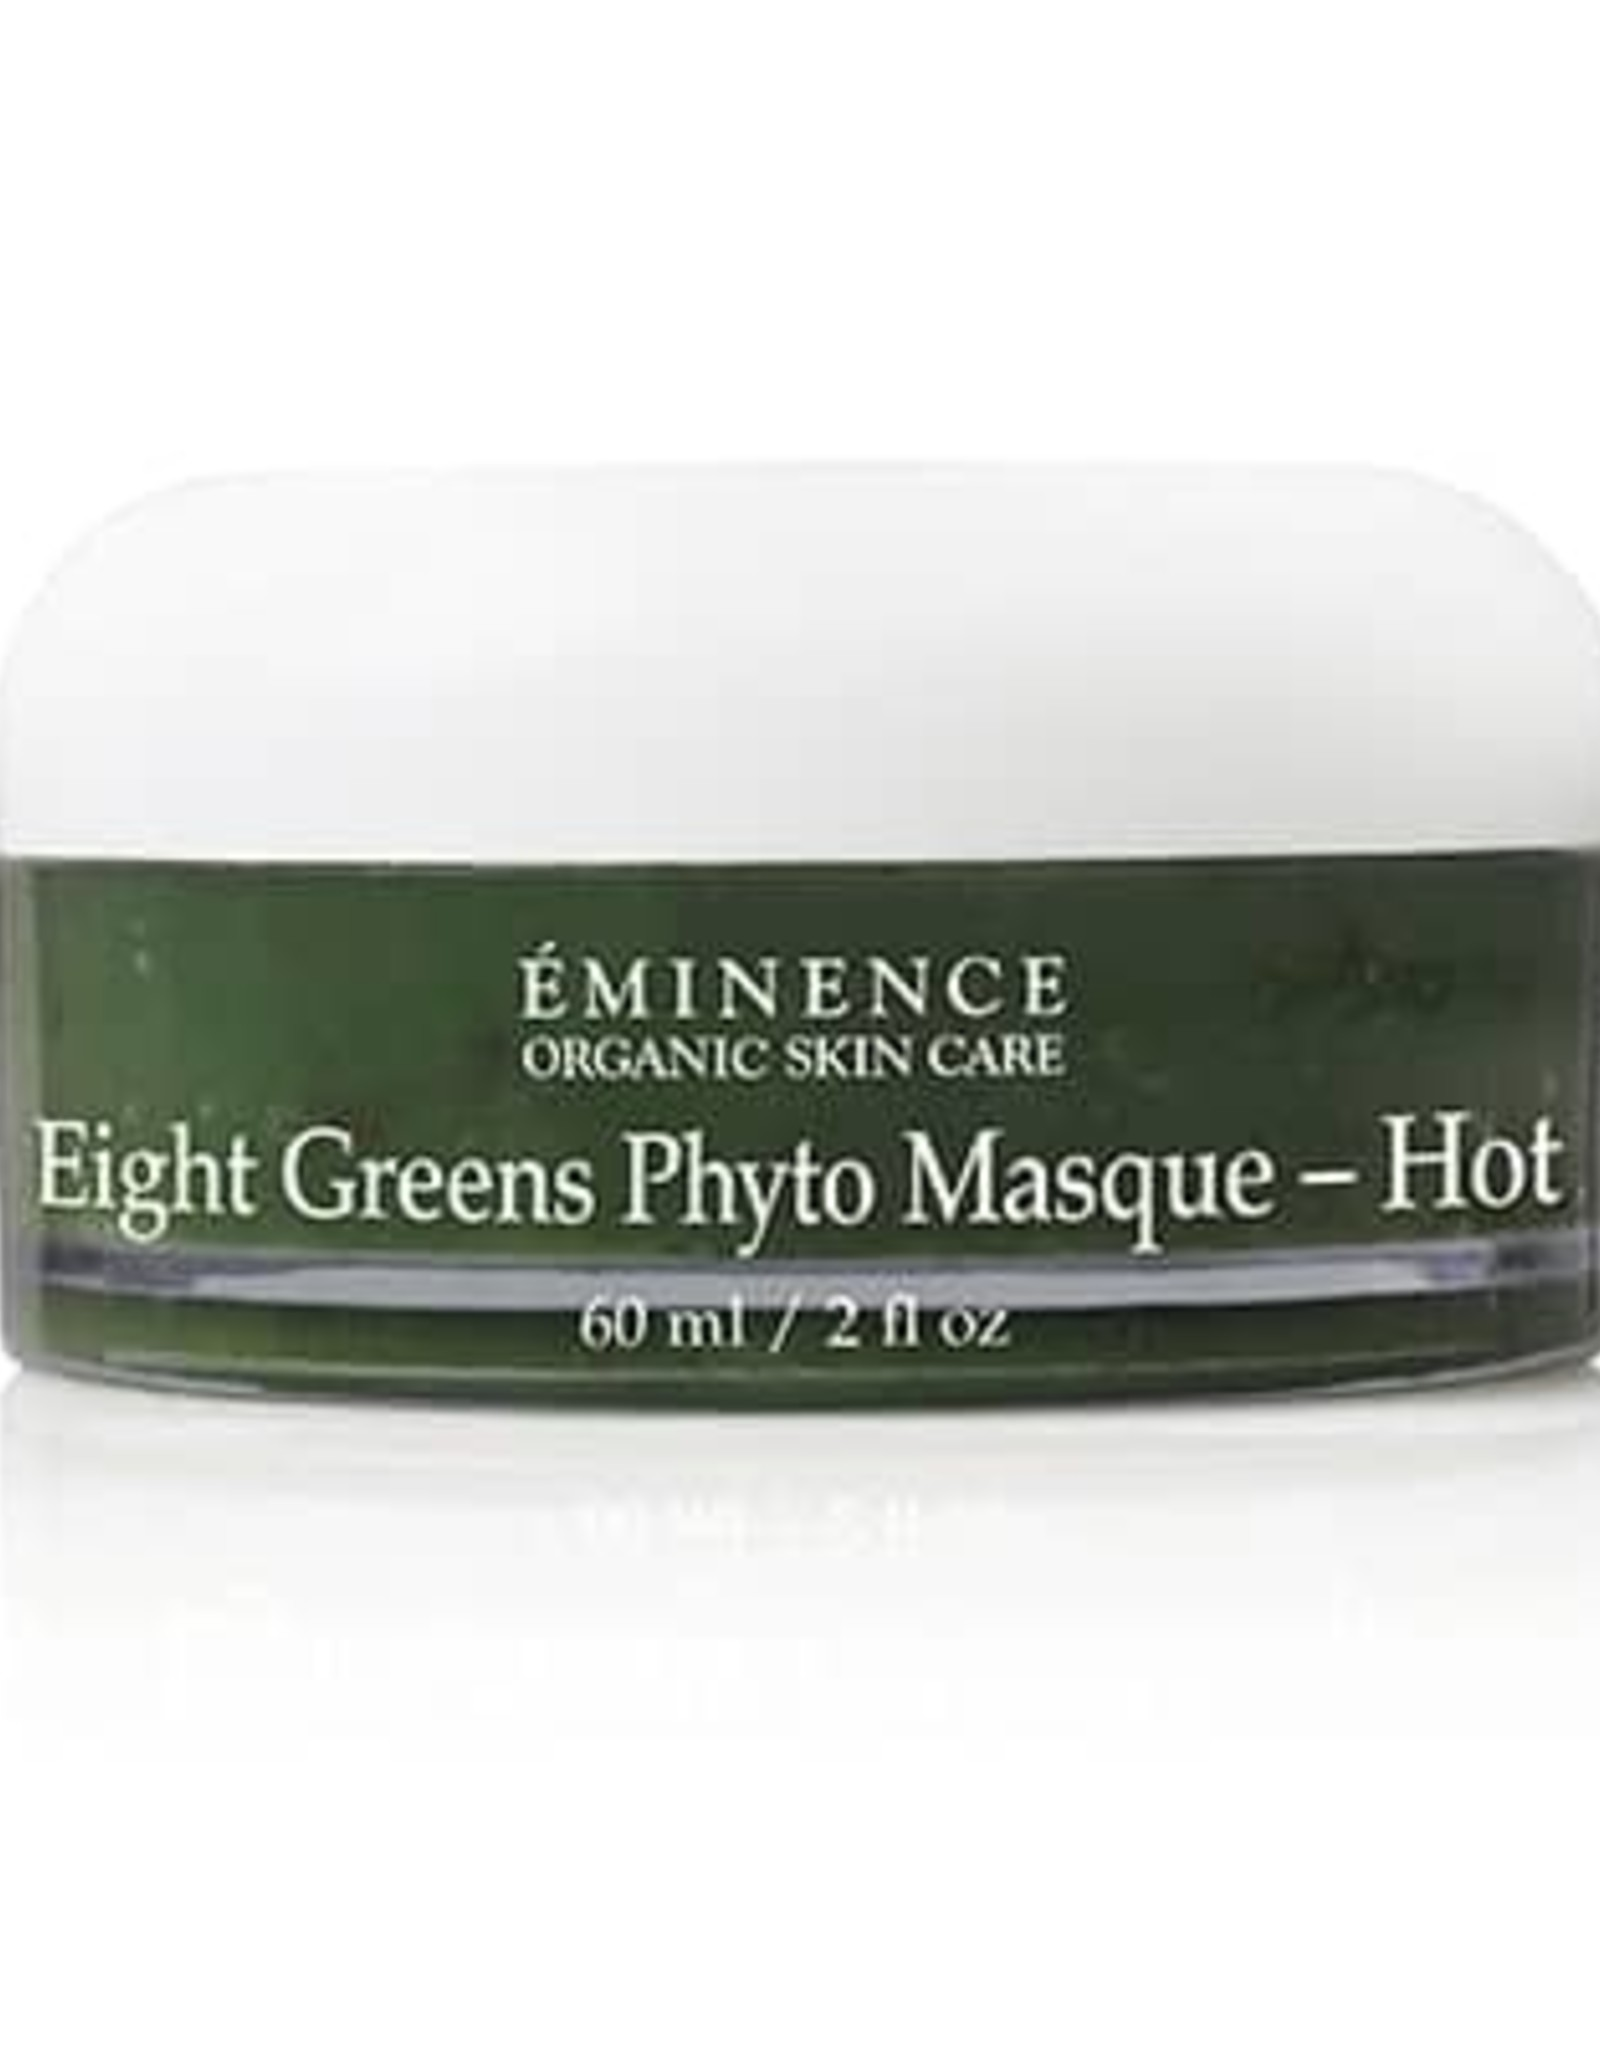 Eminence Eight Greens Phyto Masque Hot